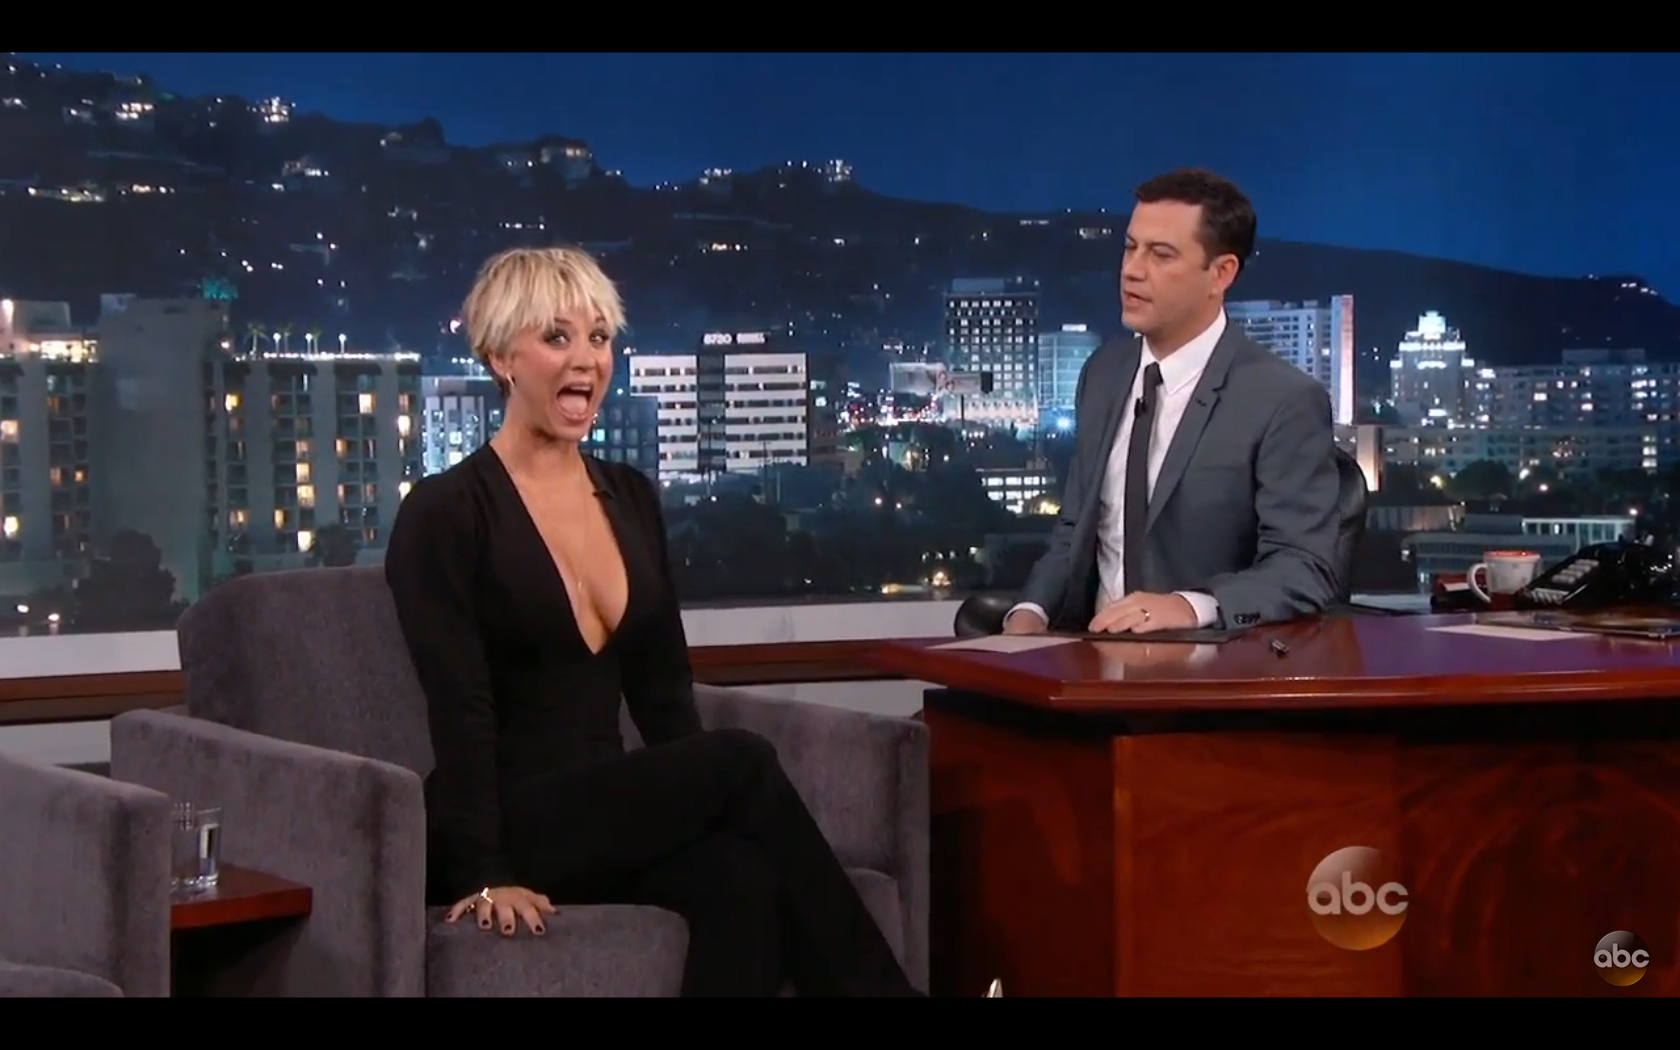 Kaley Cuoco on Jimmy Kimmel